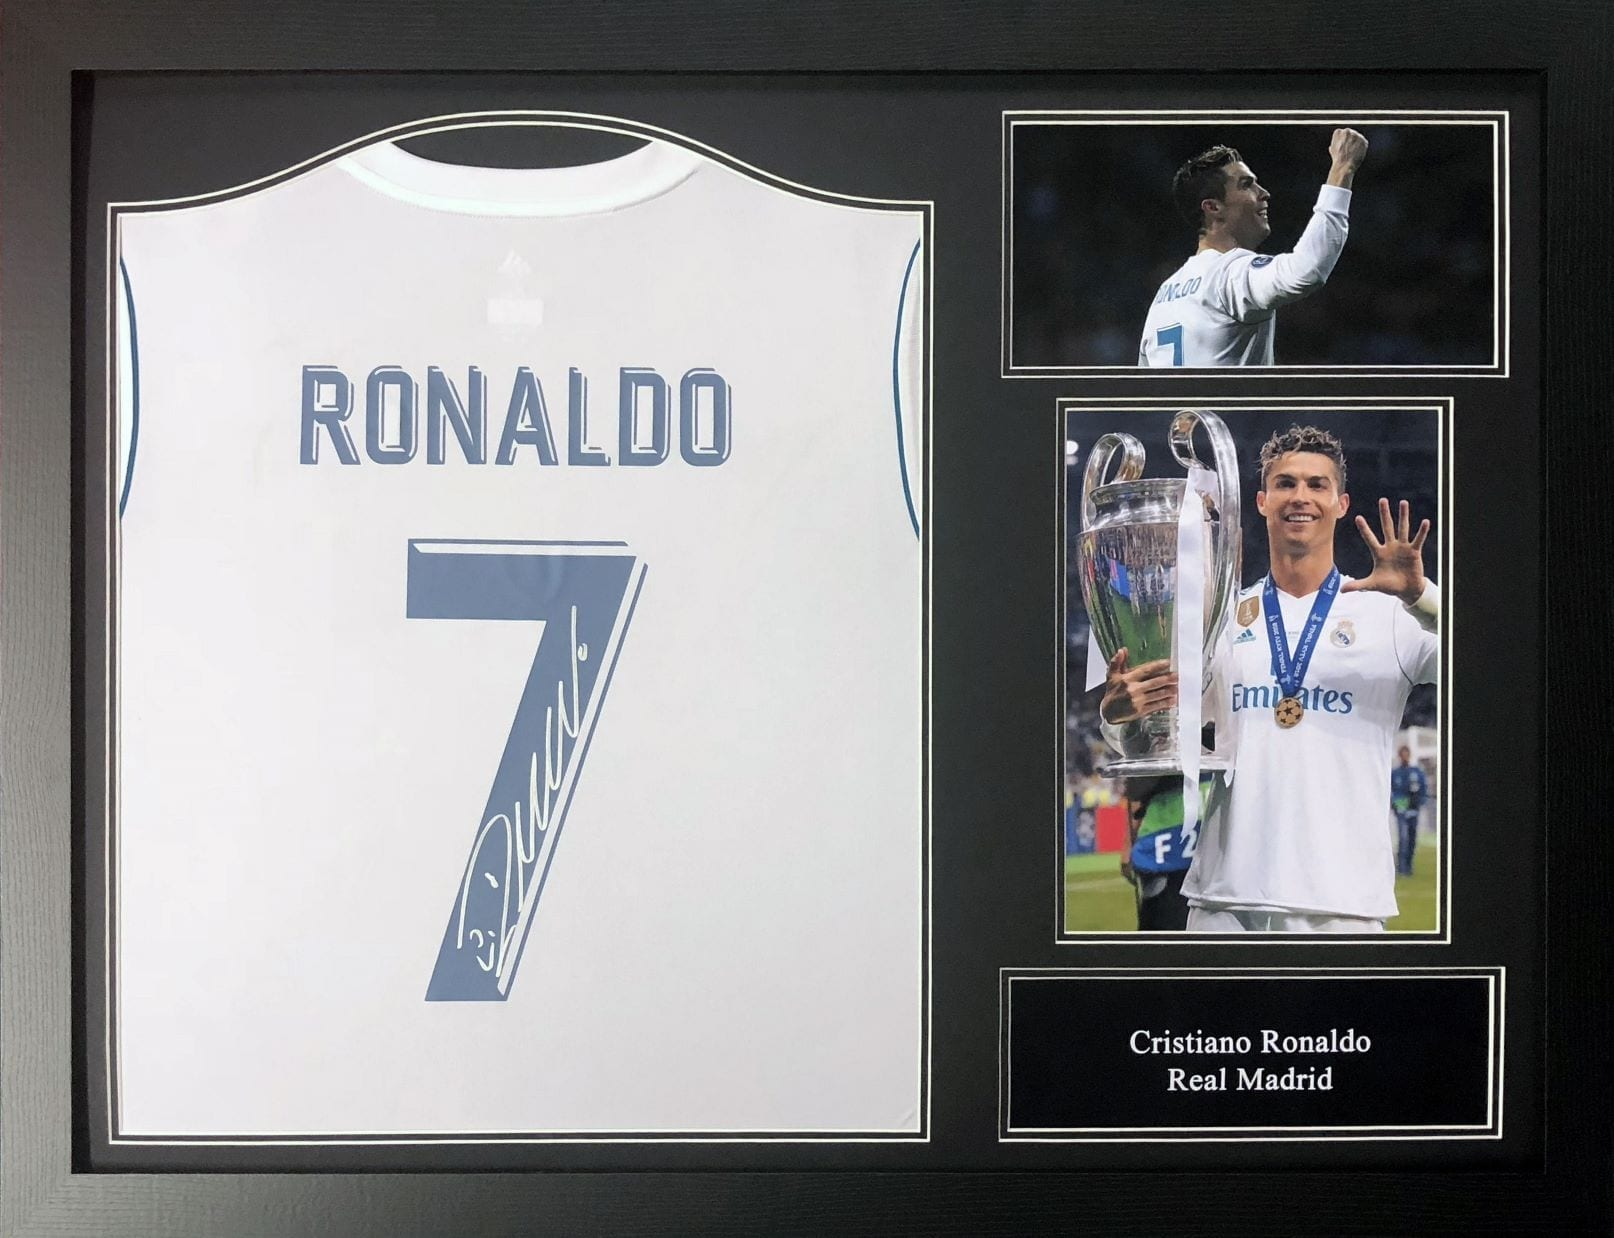 sports shoes 8c7f6 17693 cristiano ronaldo signed jersey